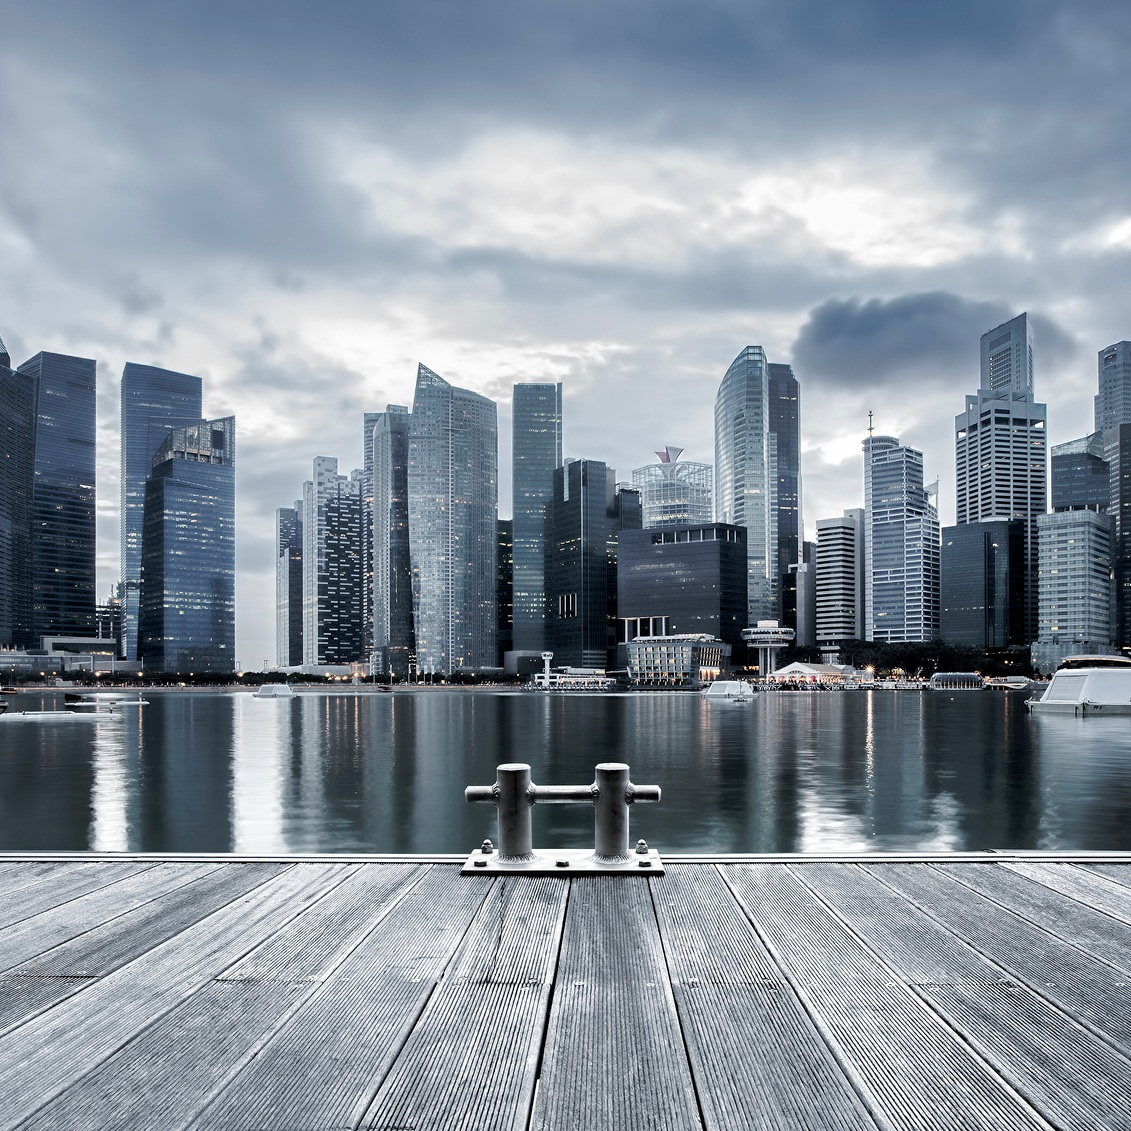 march 20, 2018singapore - US IMMIGRATION BY INVESTMENT SEMINAR